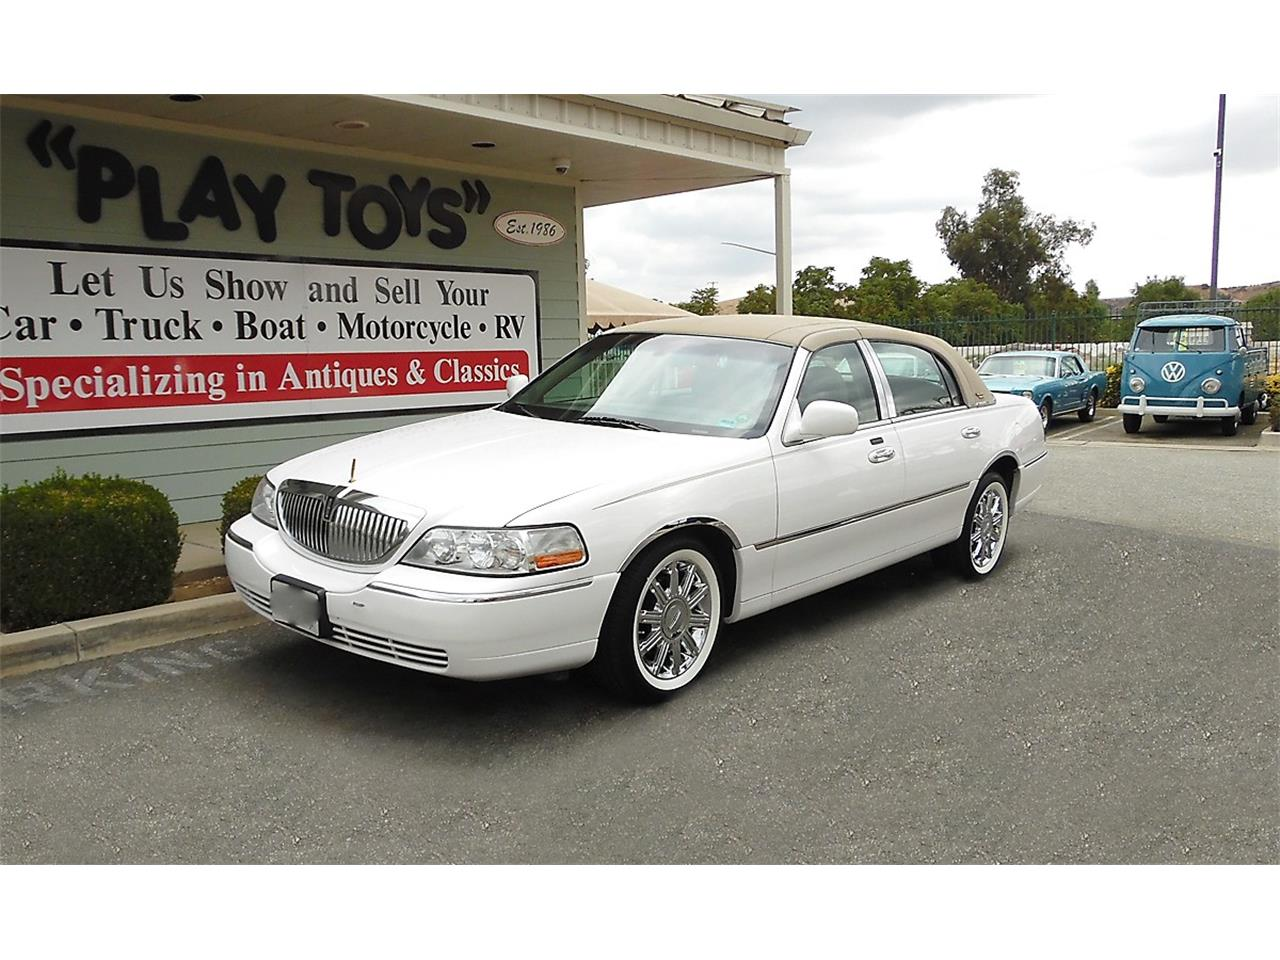 2009 Lincoln Town Car For Sale Cc 1149356 Rim Large Picture Of 09 Omuk